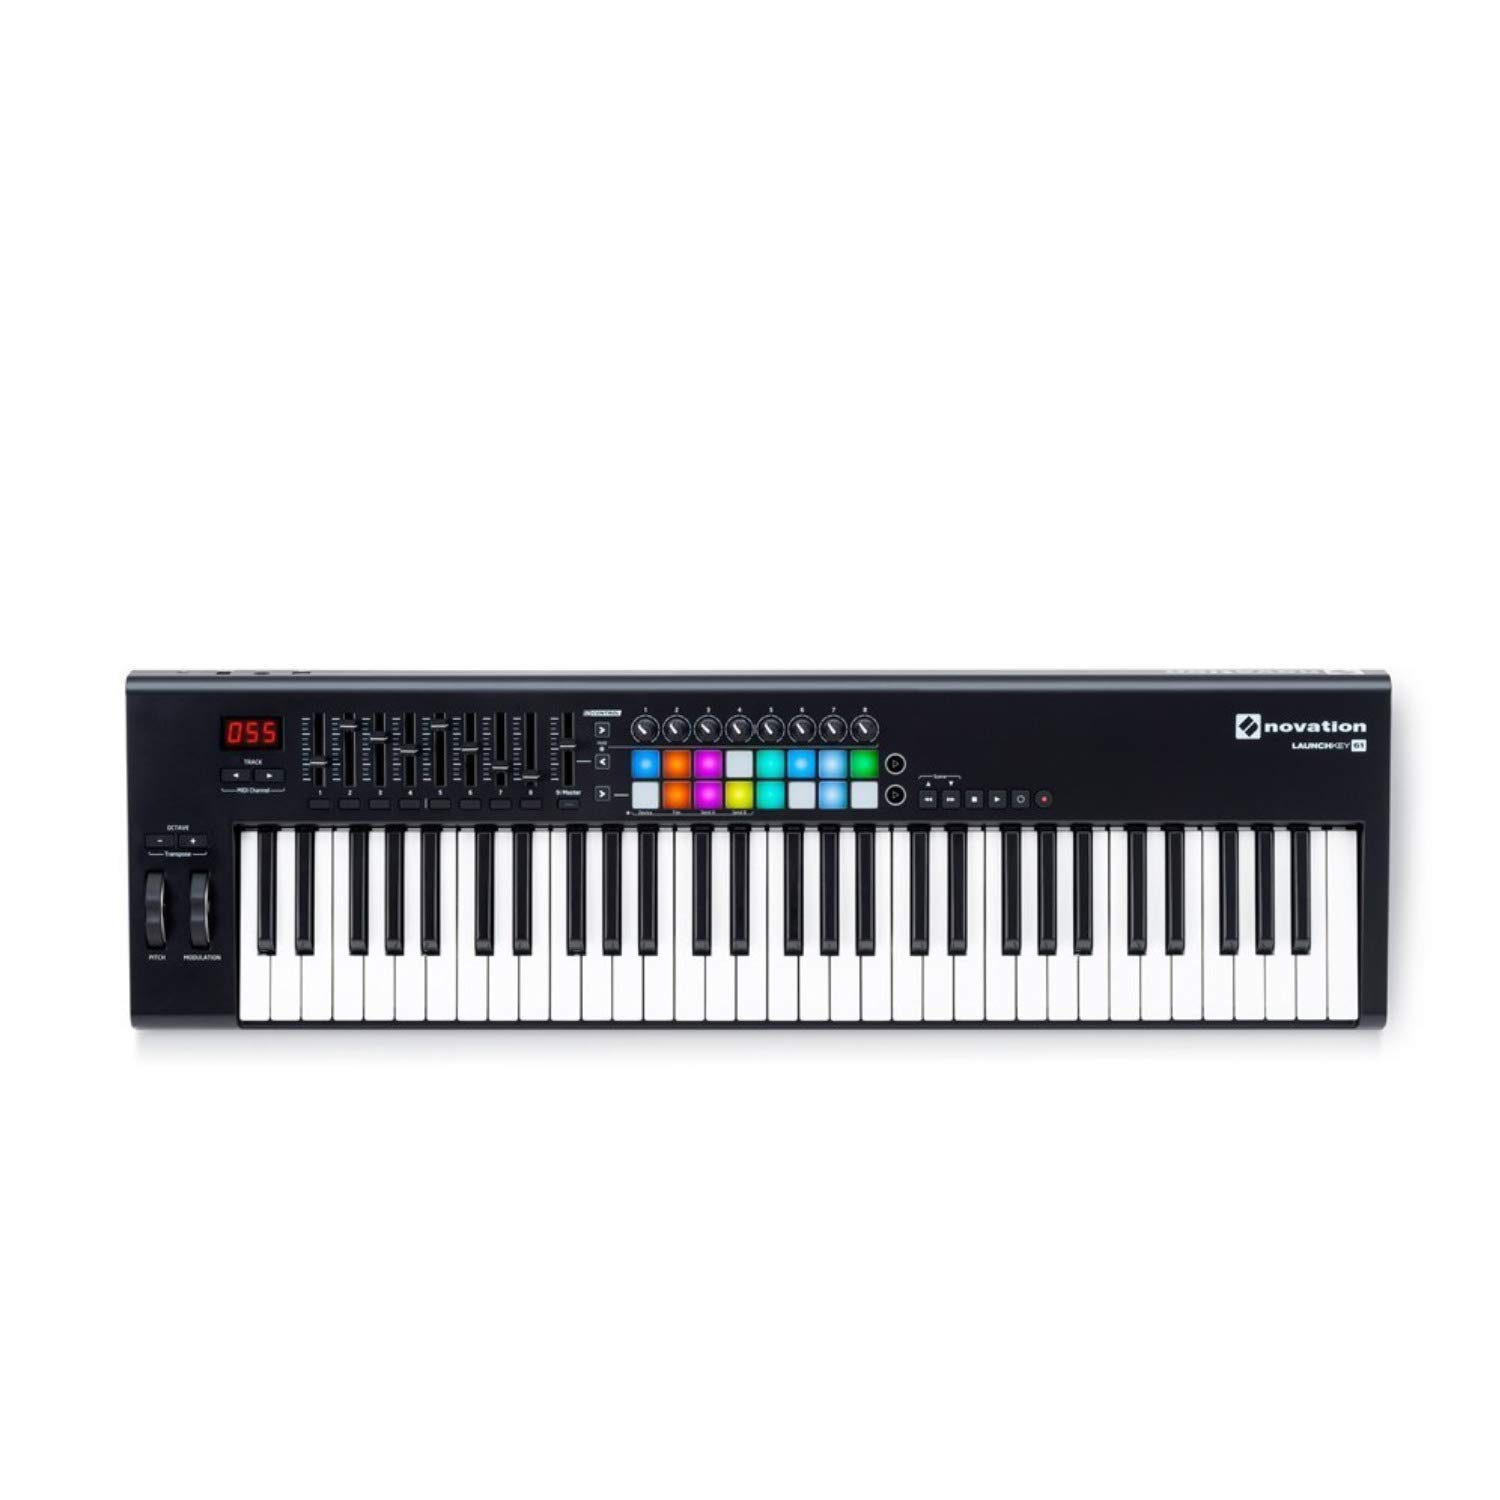 Novation Launchkey 61 MK2 Keyboard Controller with Knox Keyboard Stand and Sustain Pedal by Novation (Image #2)